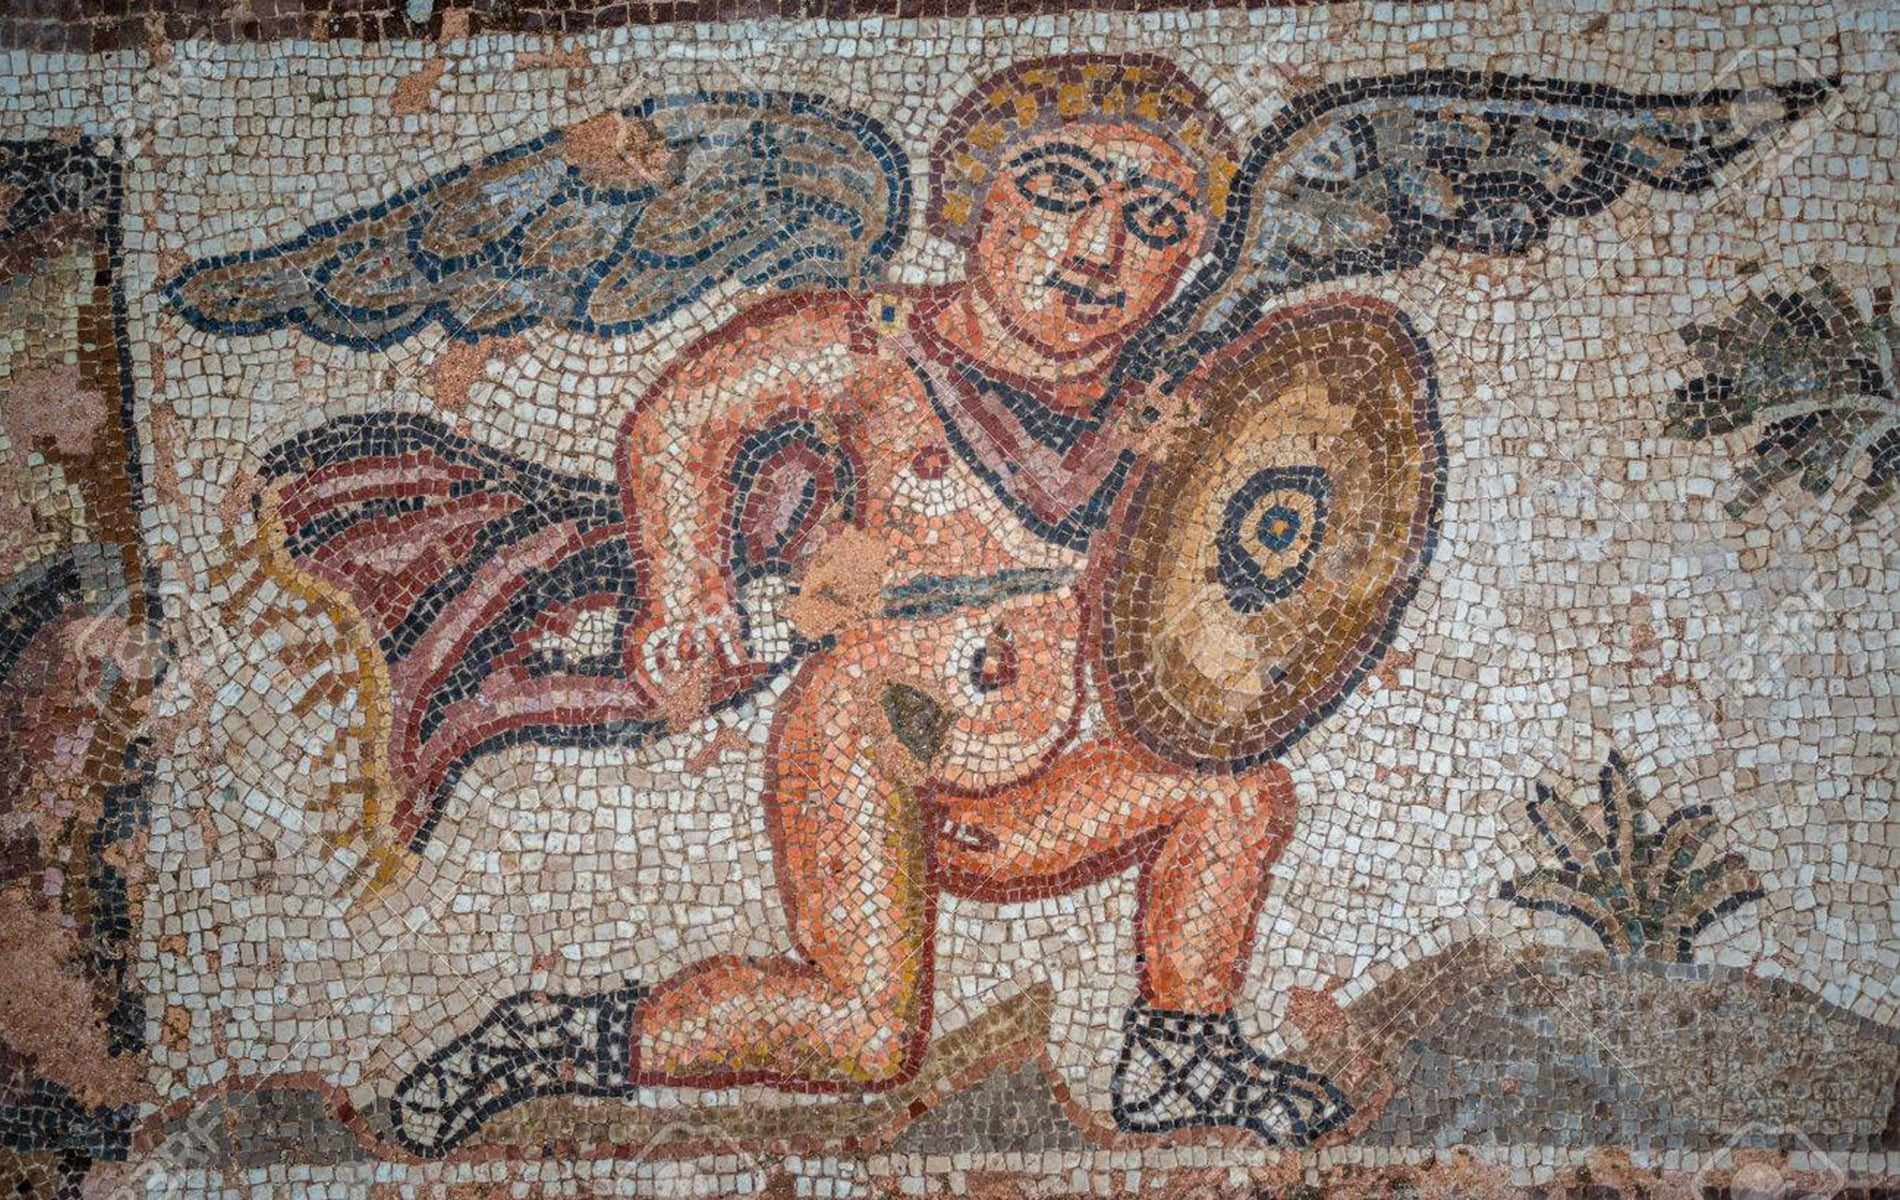 Visit Paphos Mosaics in a taxi in Paphos